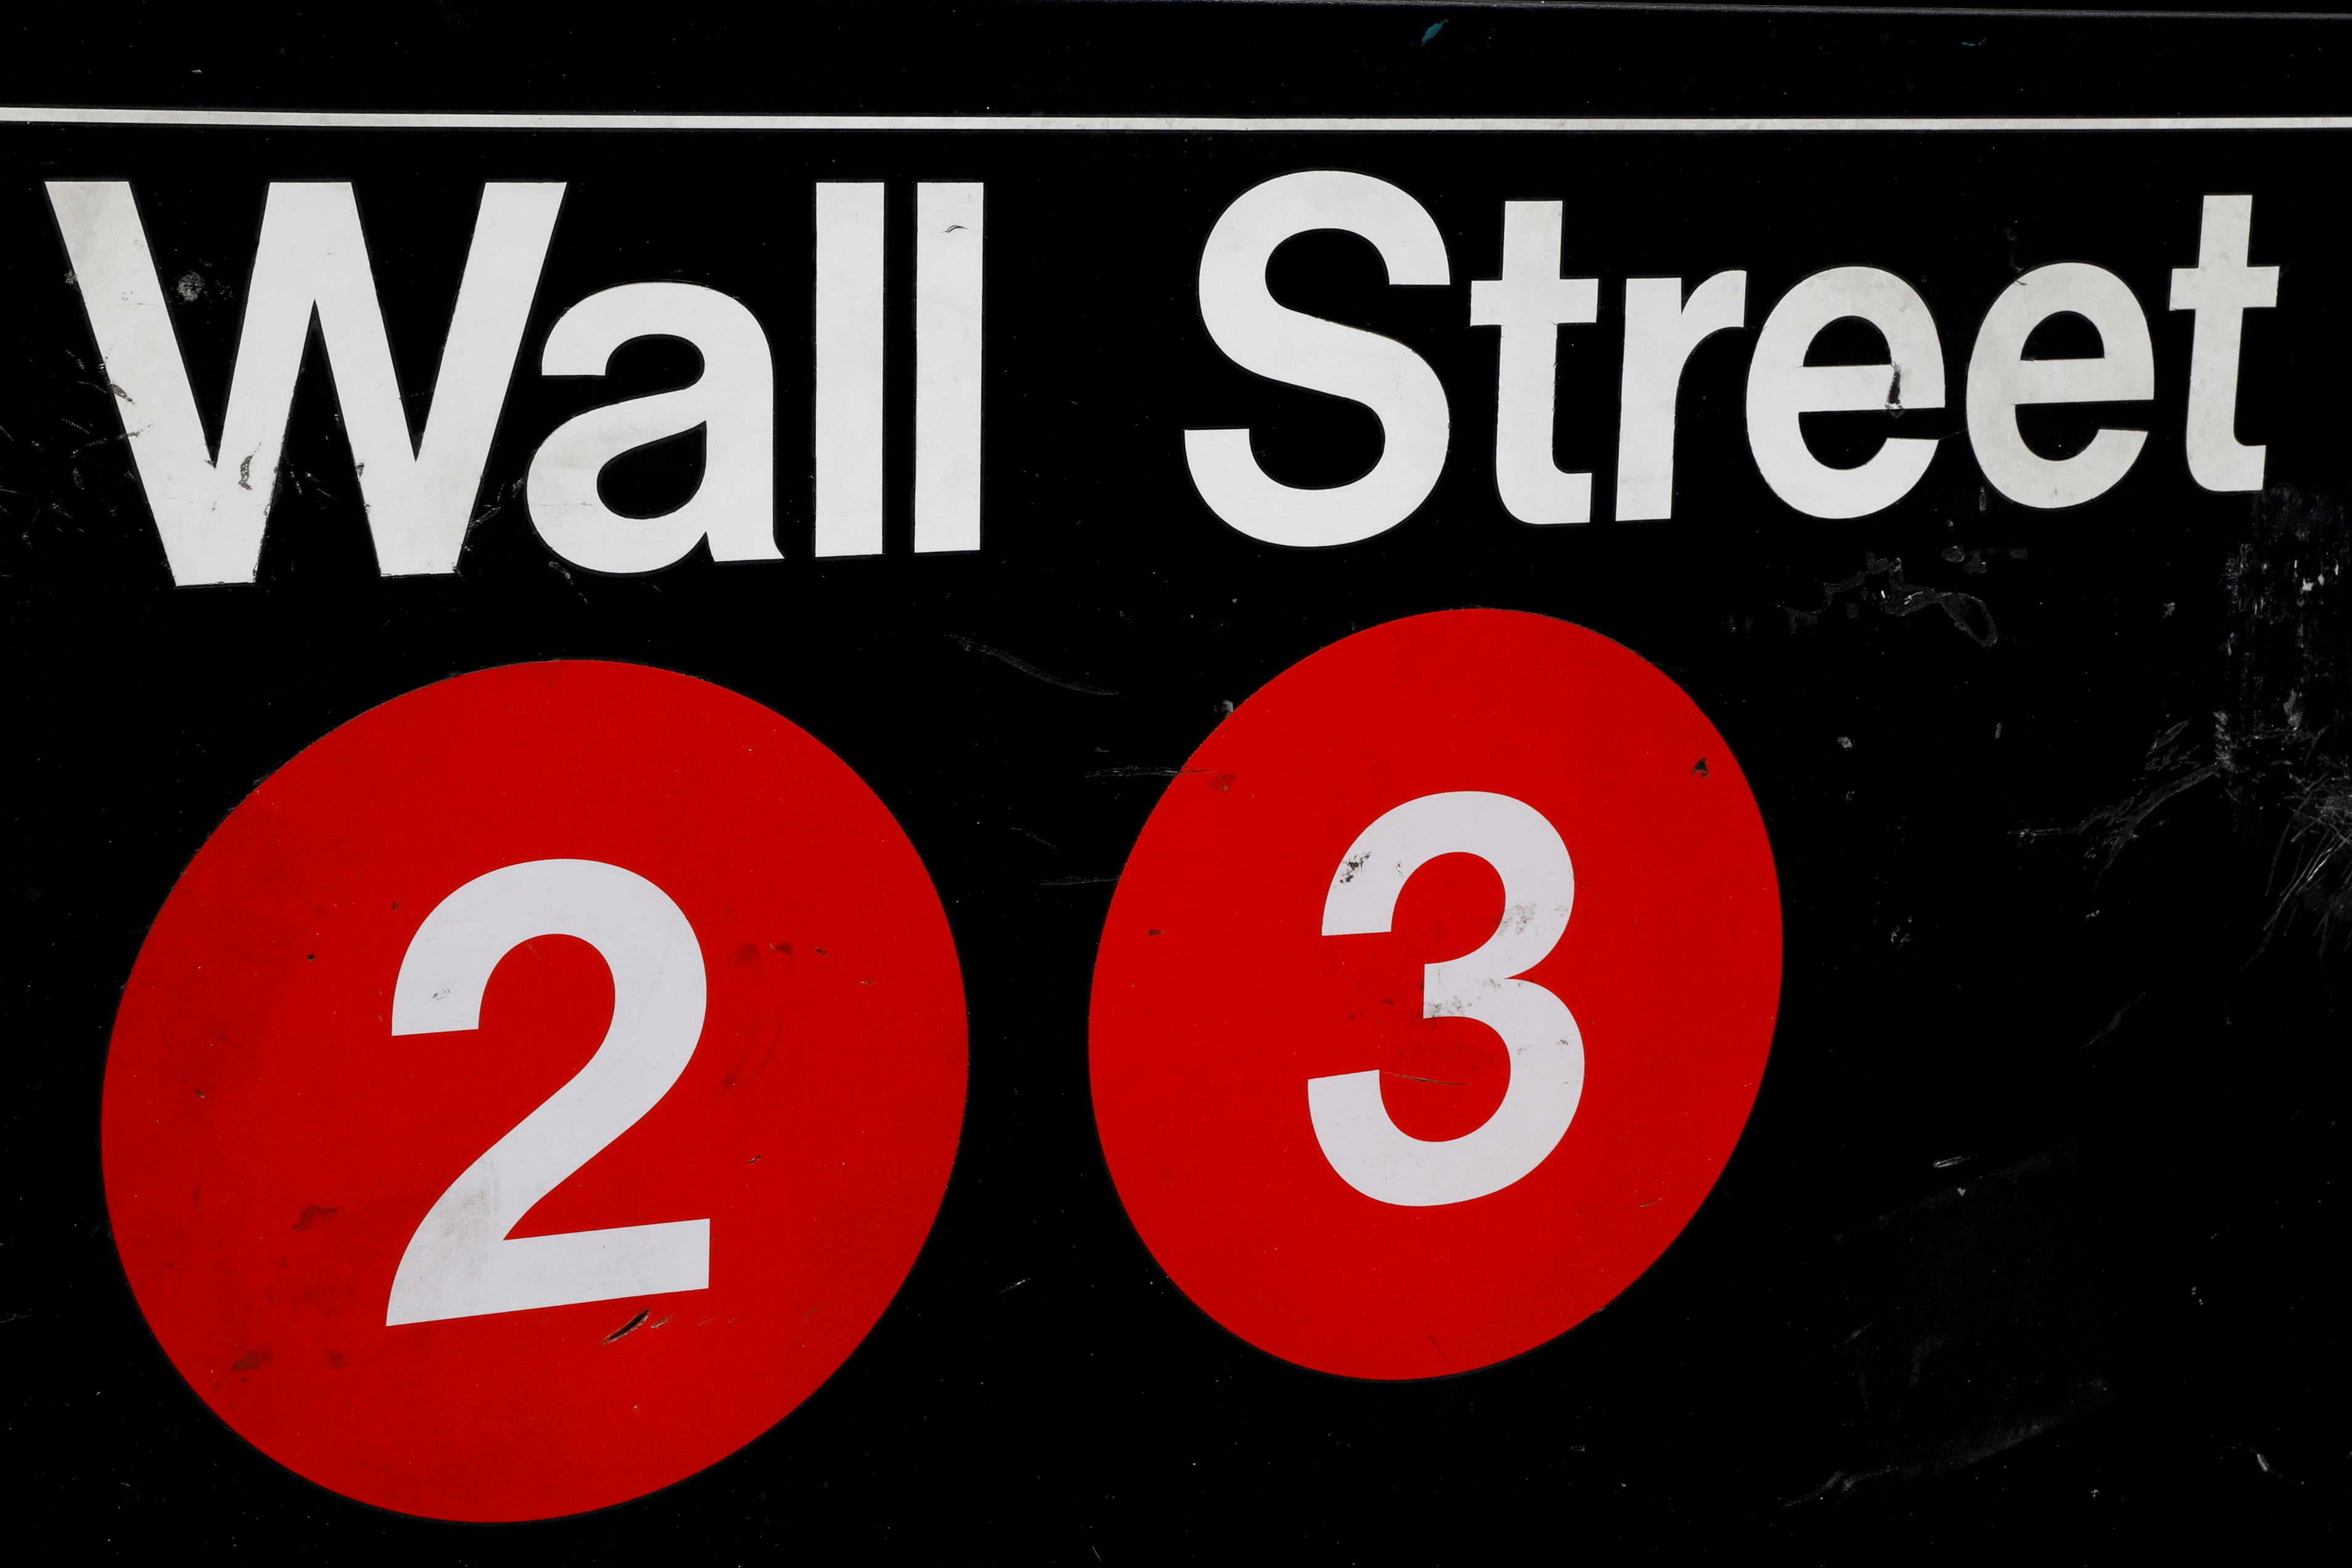 A sign for the Wall Street subway station is seen in the financial district in New York City, U.S., August 23, 2018. REUTERS/Brendan McDermid